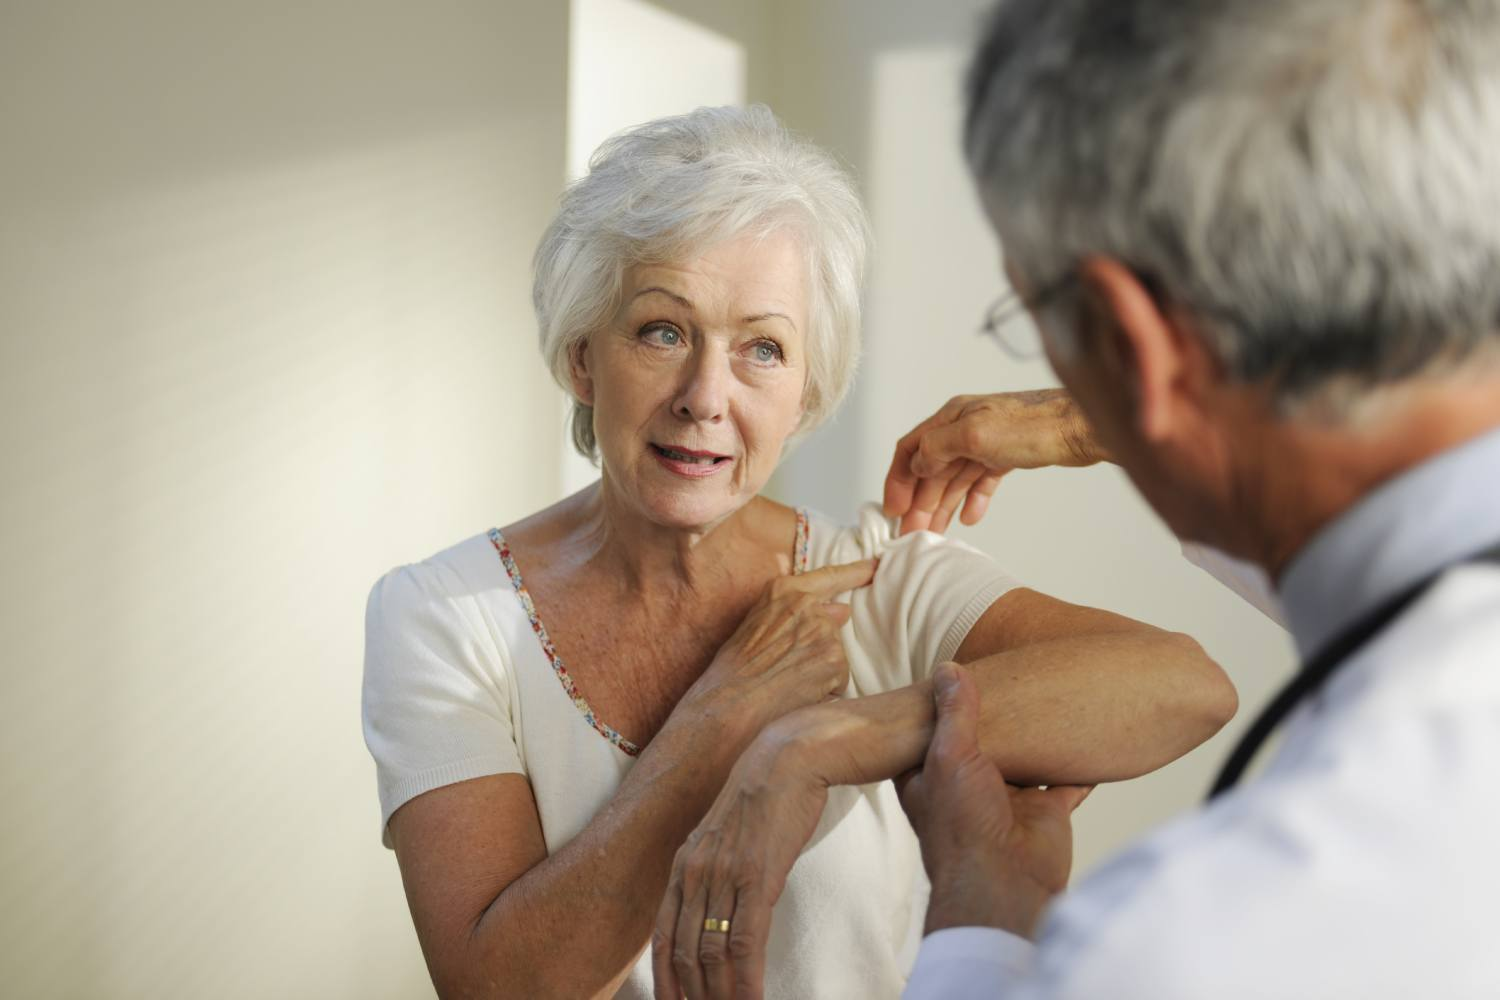 Shoulder Pain Management